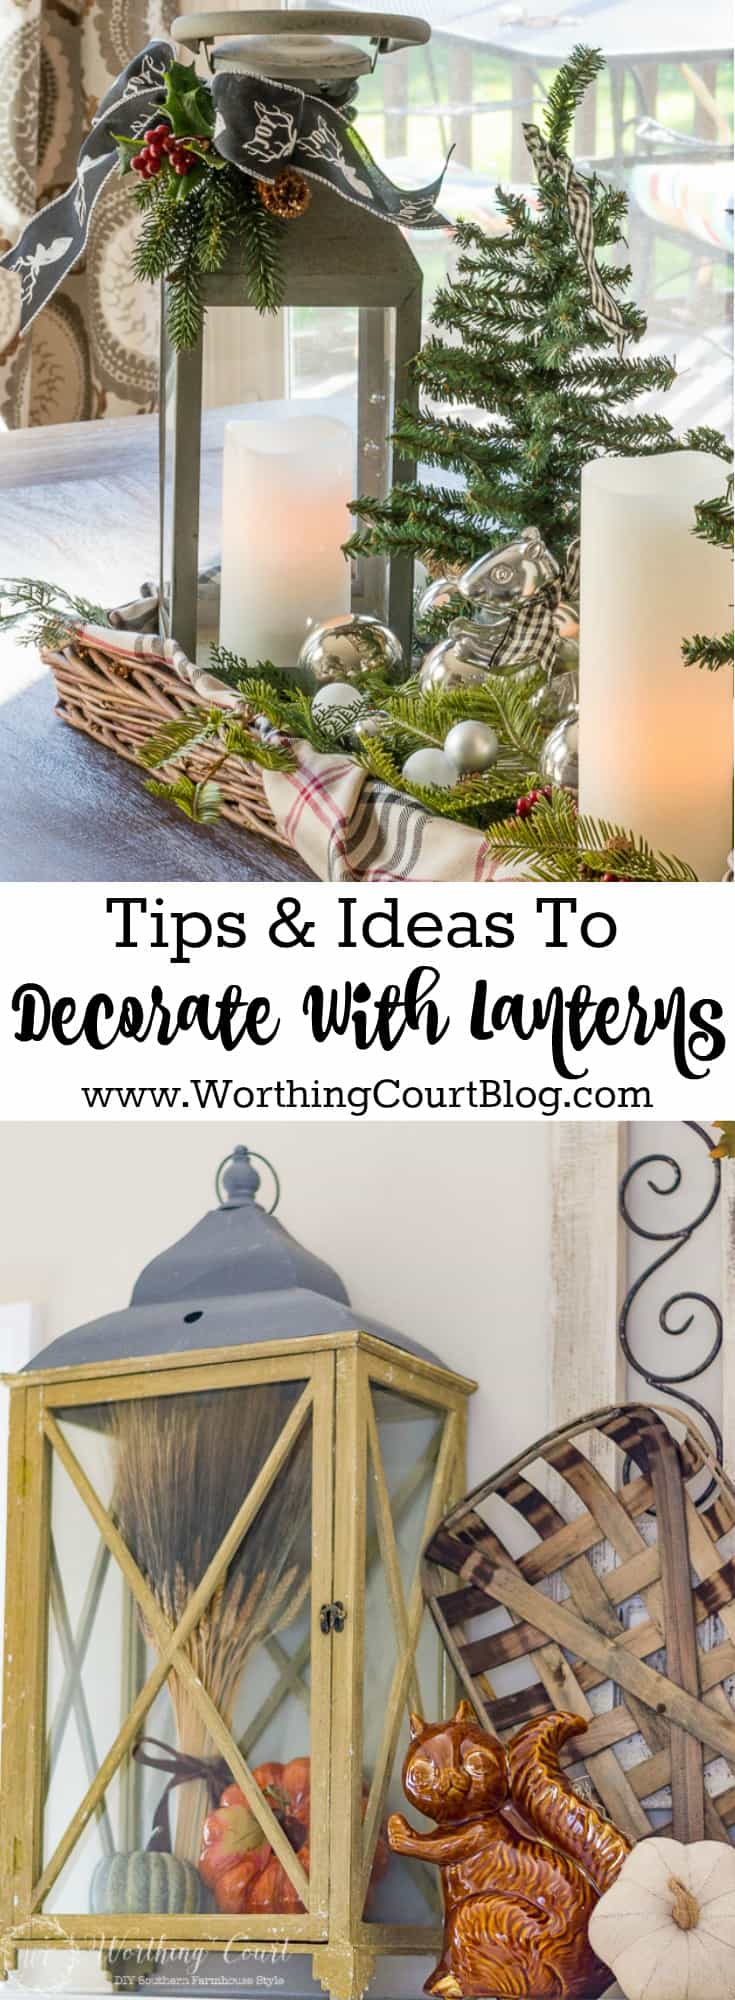 How To Decorate With Lanterns - tips and ideas for what to put in lanterns